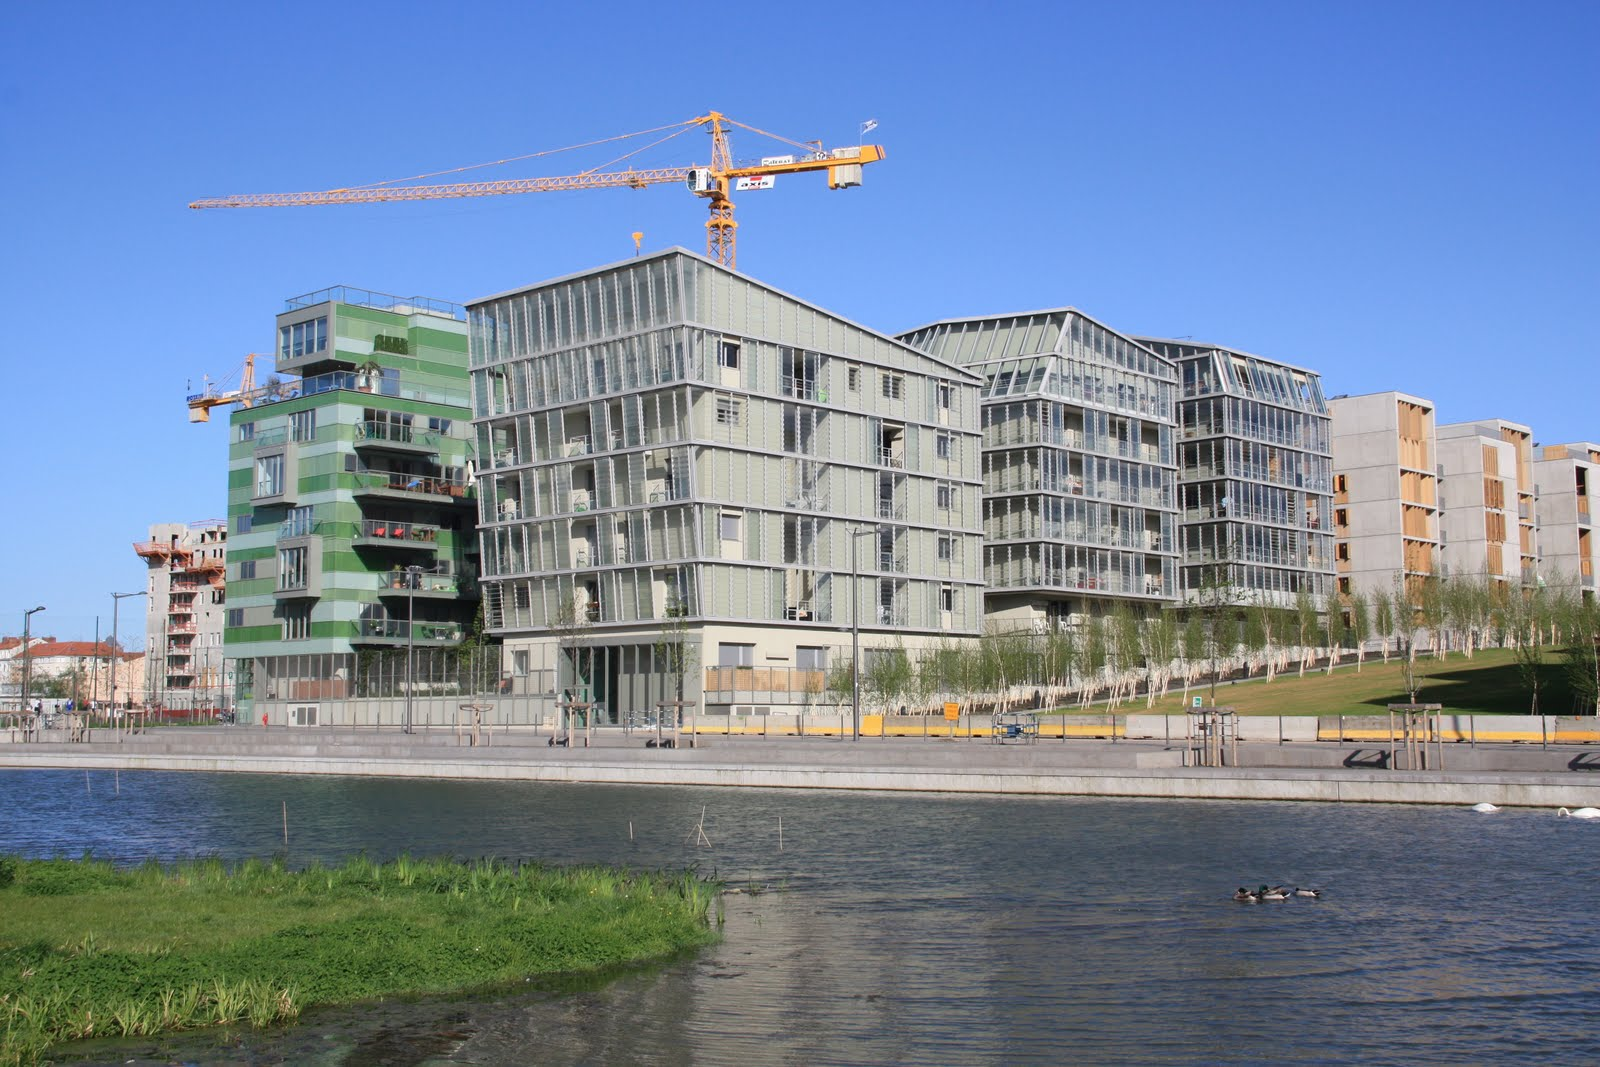 Internationale Utopiste Le Quartier De La Confluence